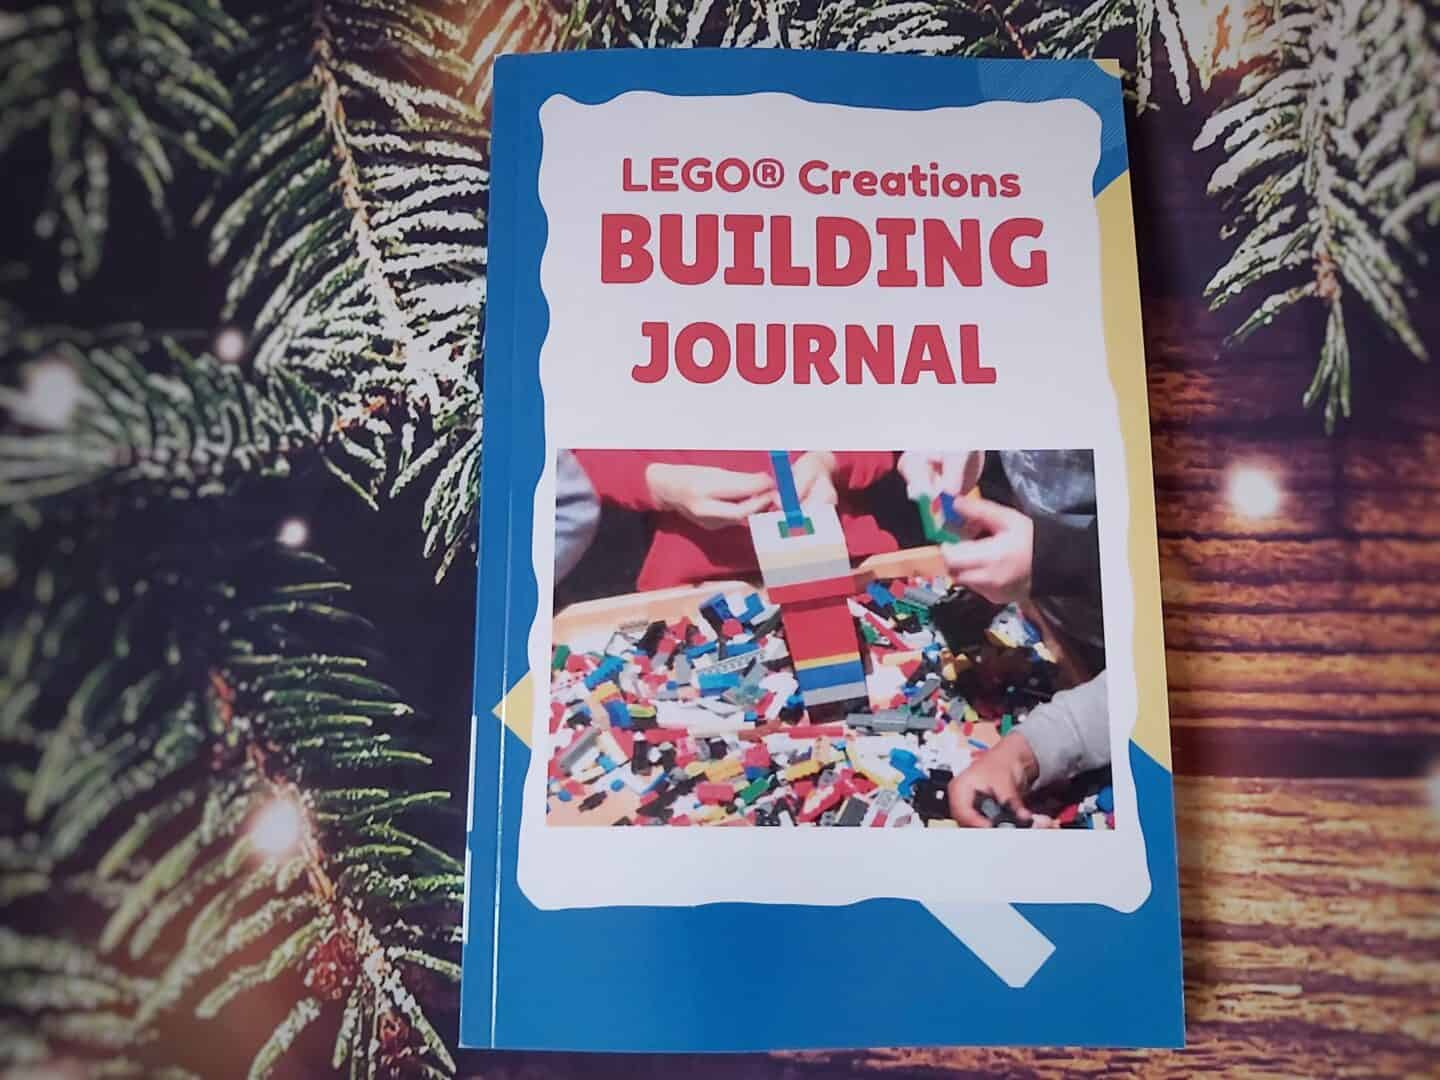 Lego Creations Building Journal - an alternative something to read for the four gift rule